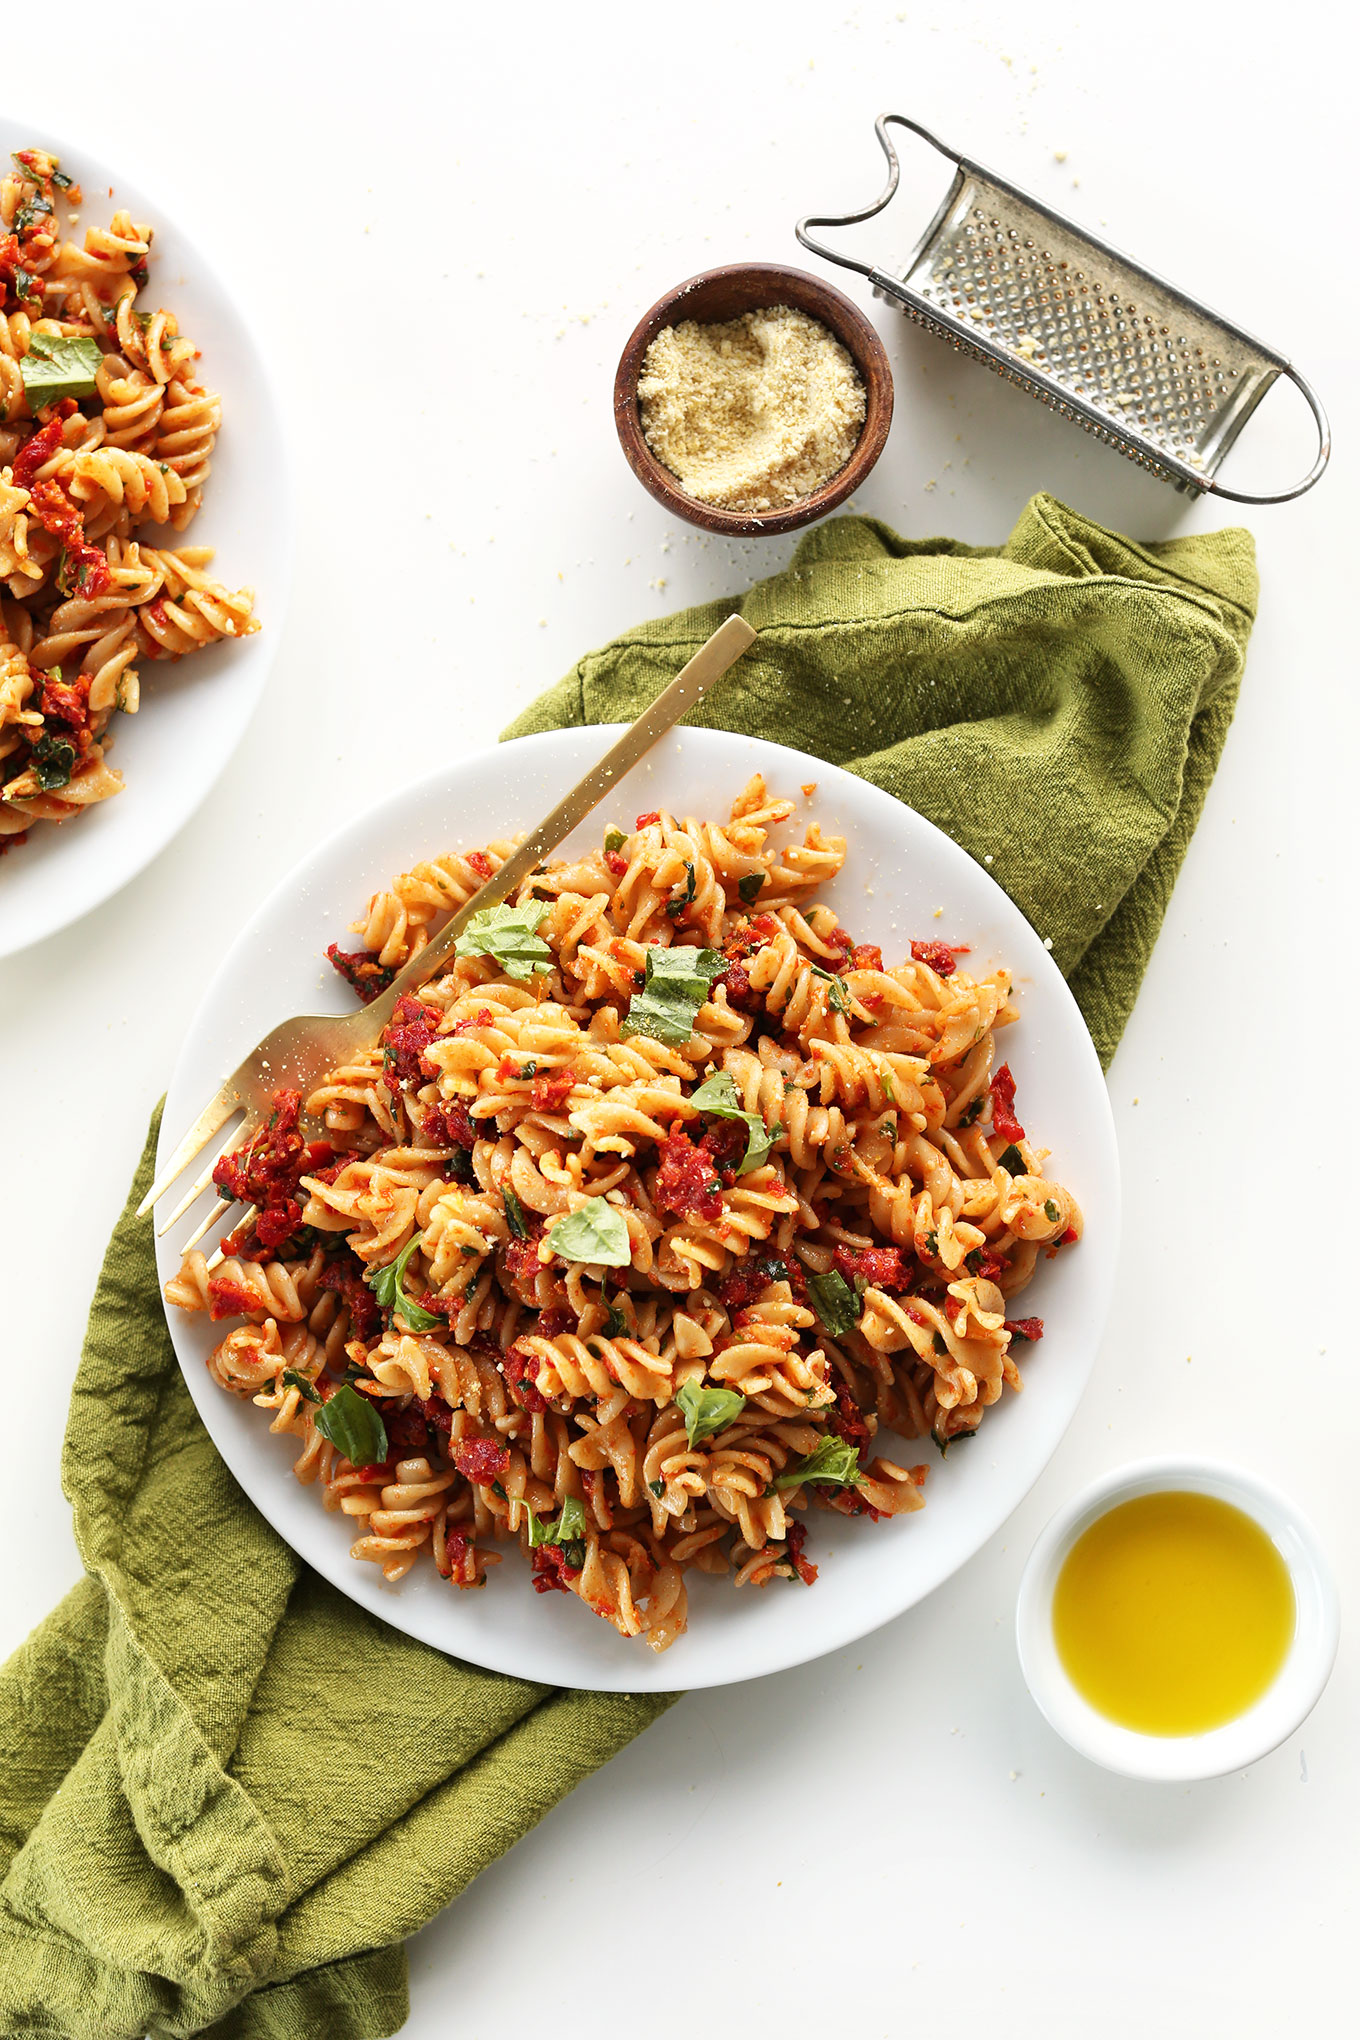 Dinner plate filled with our delicious and simple Sun-Dried Tomato Pesto Pasta